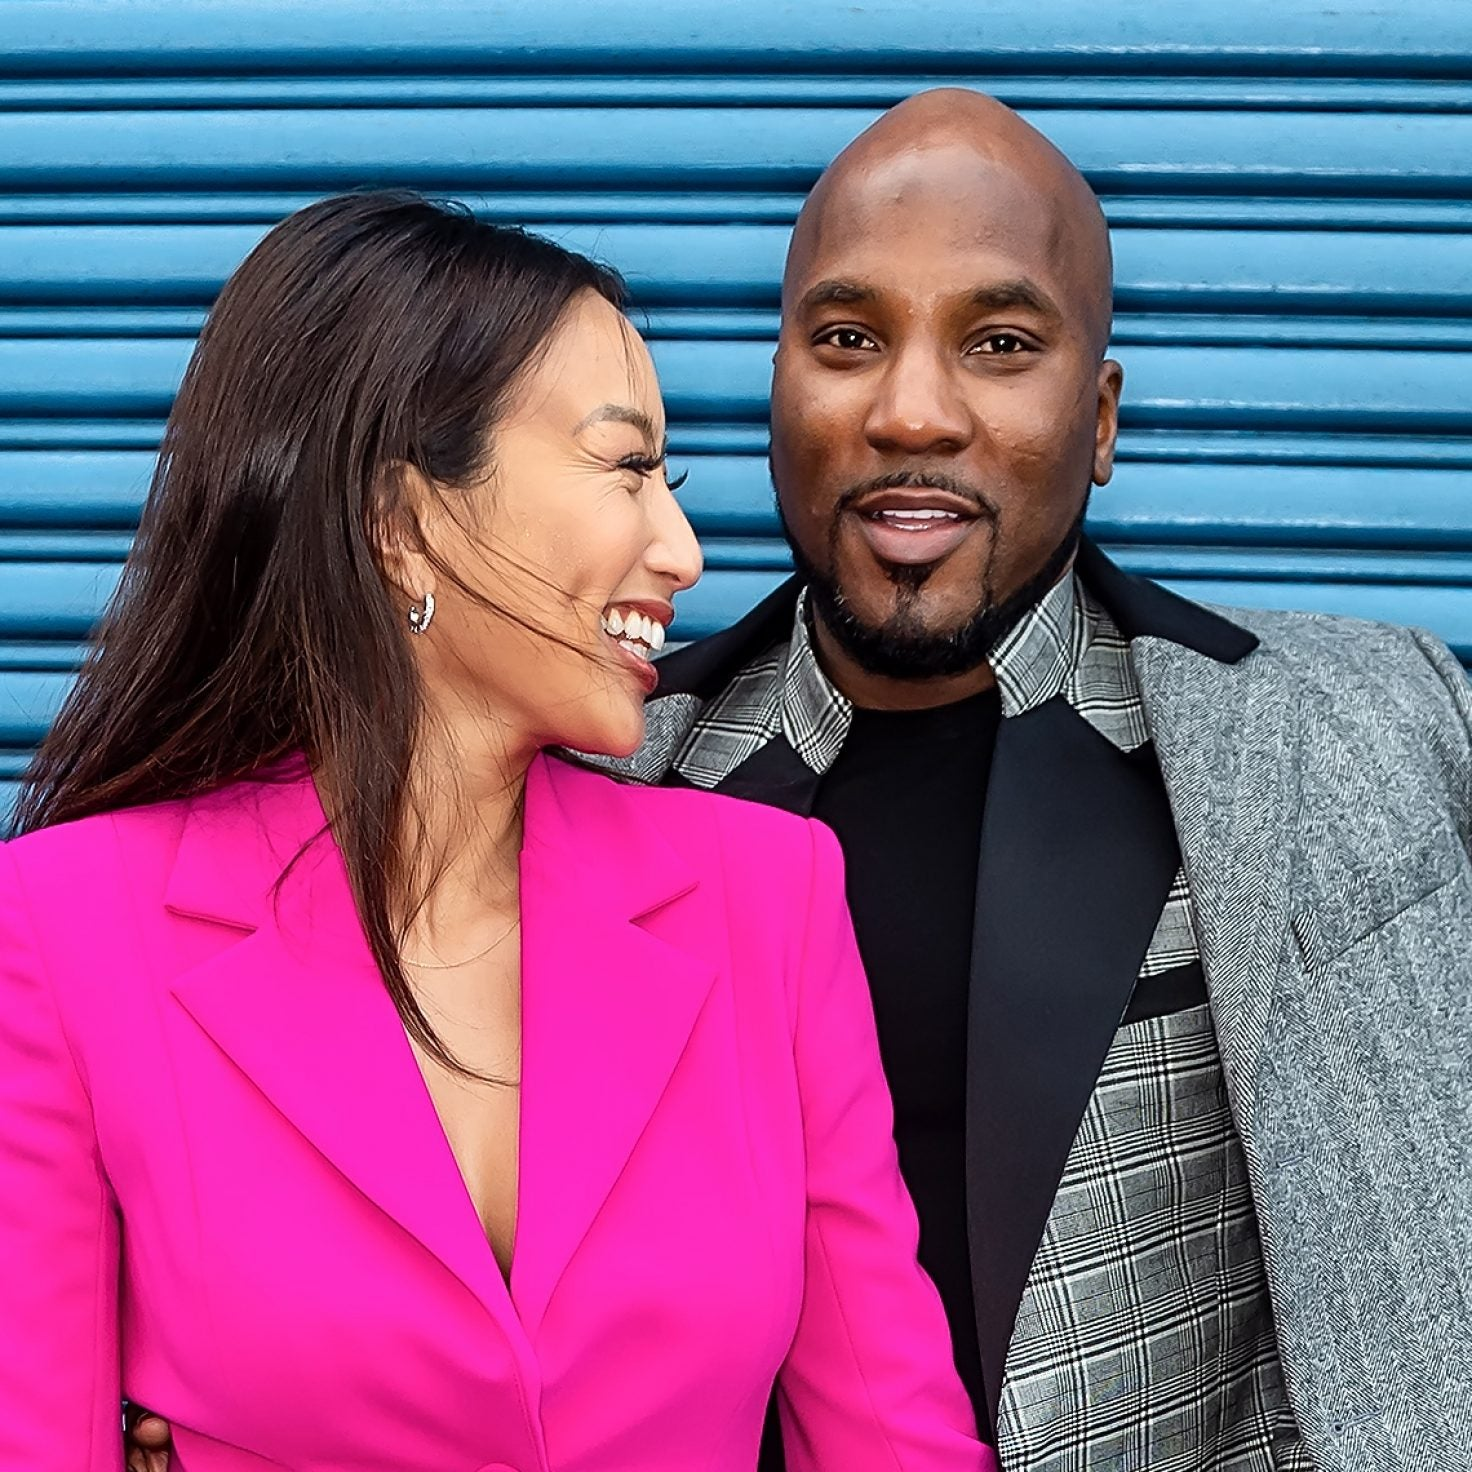 Jeezy Pulled Off The Sweetest Proposal To Jeannie Mai, Quarantine Style